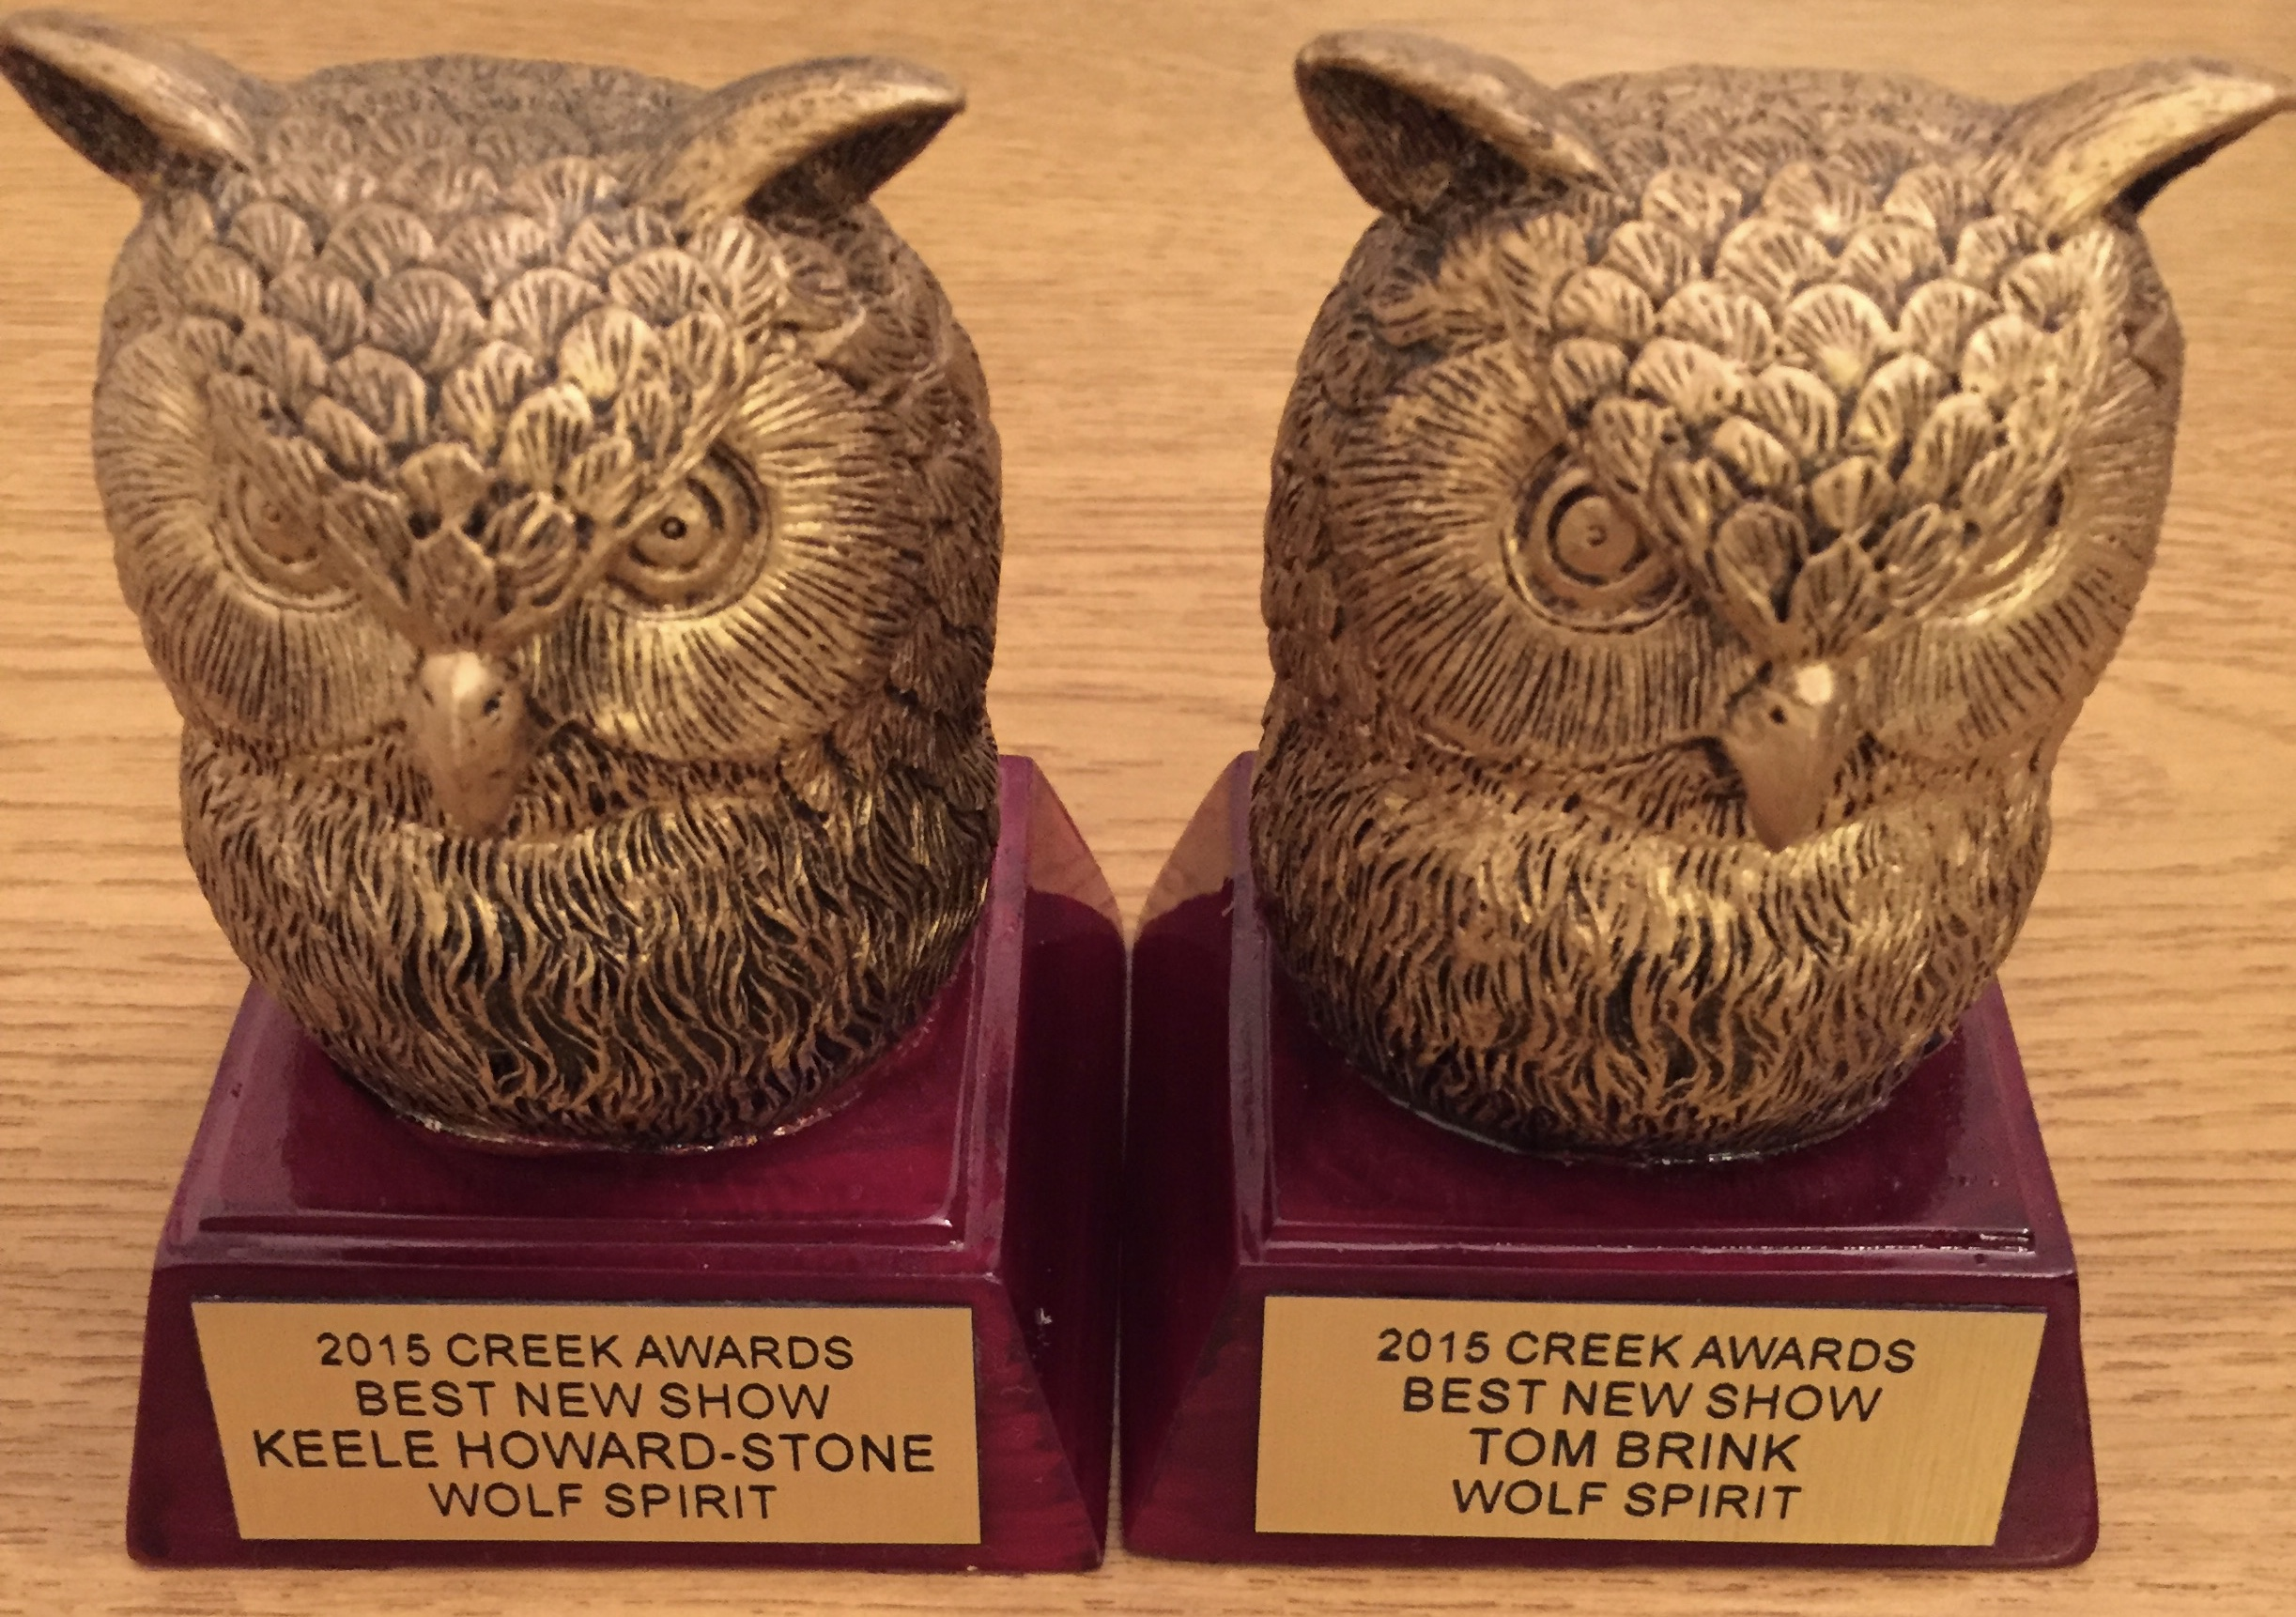 2015 Creek Awards